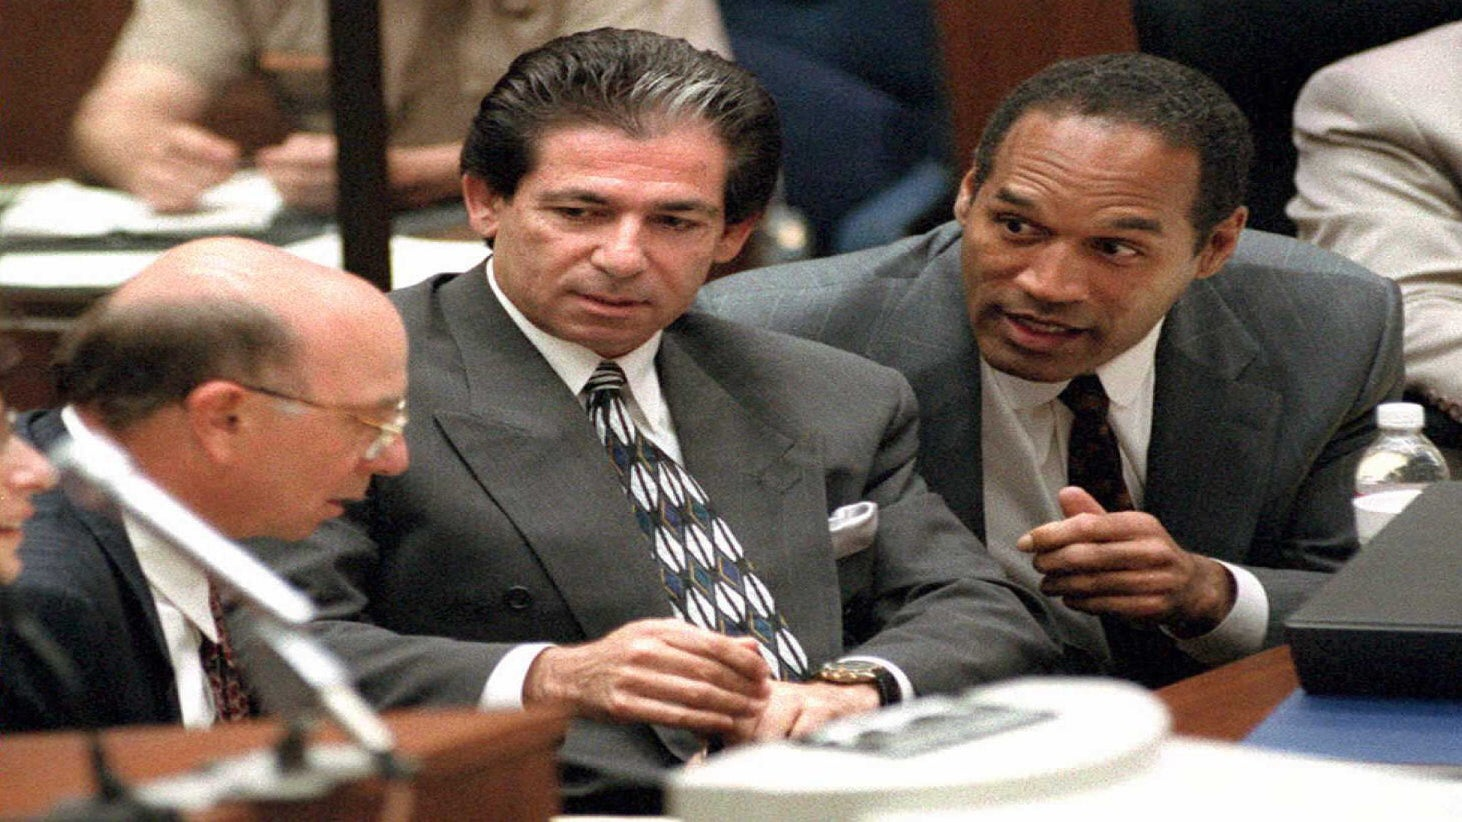 Must See: New Trailer Released for 'The People v. O.J. Simpson'